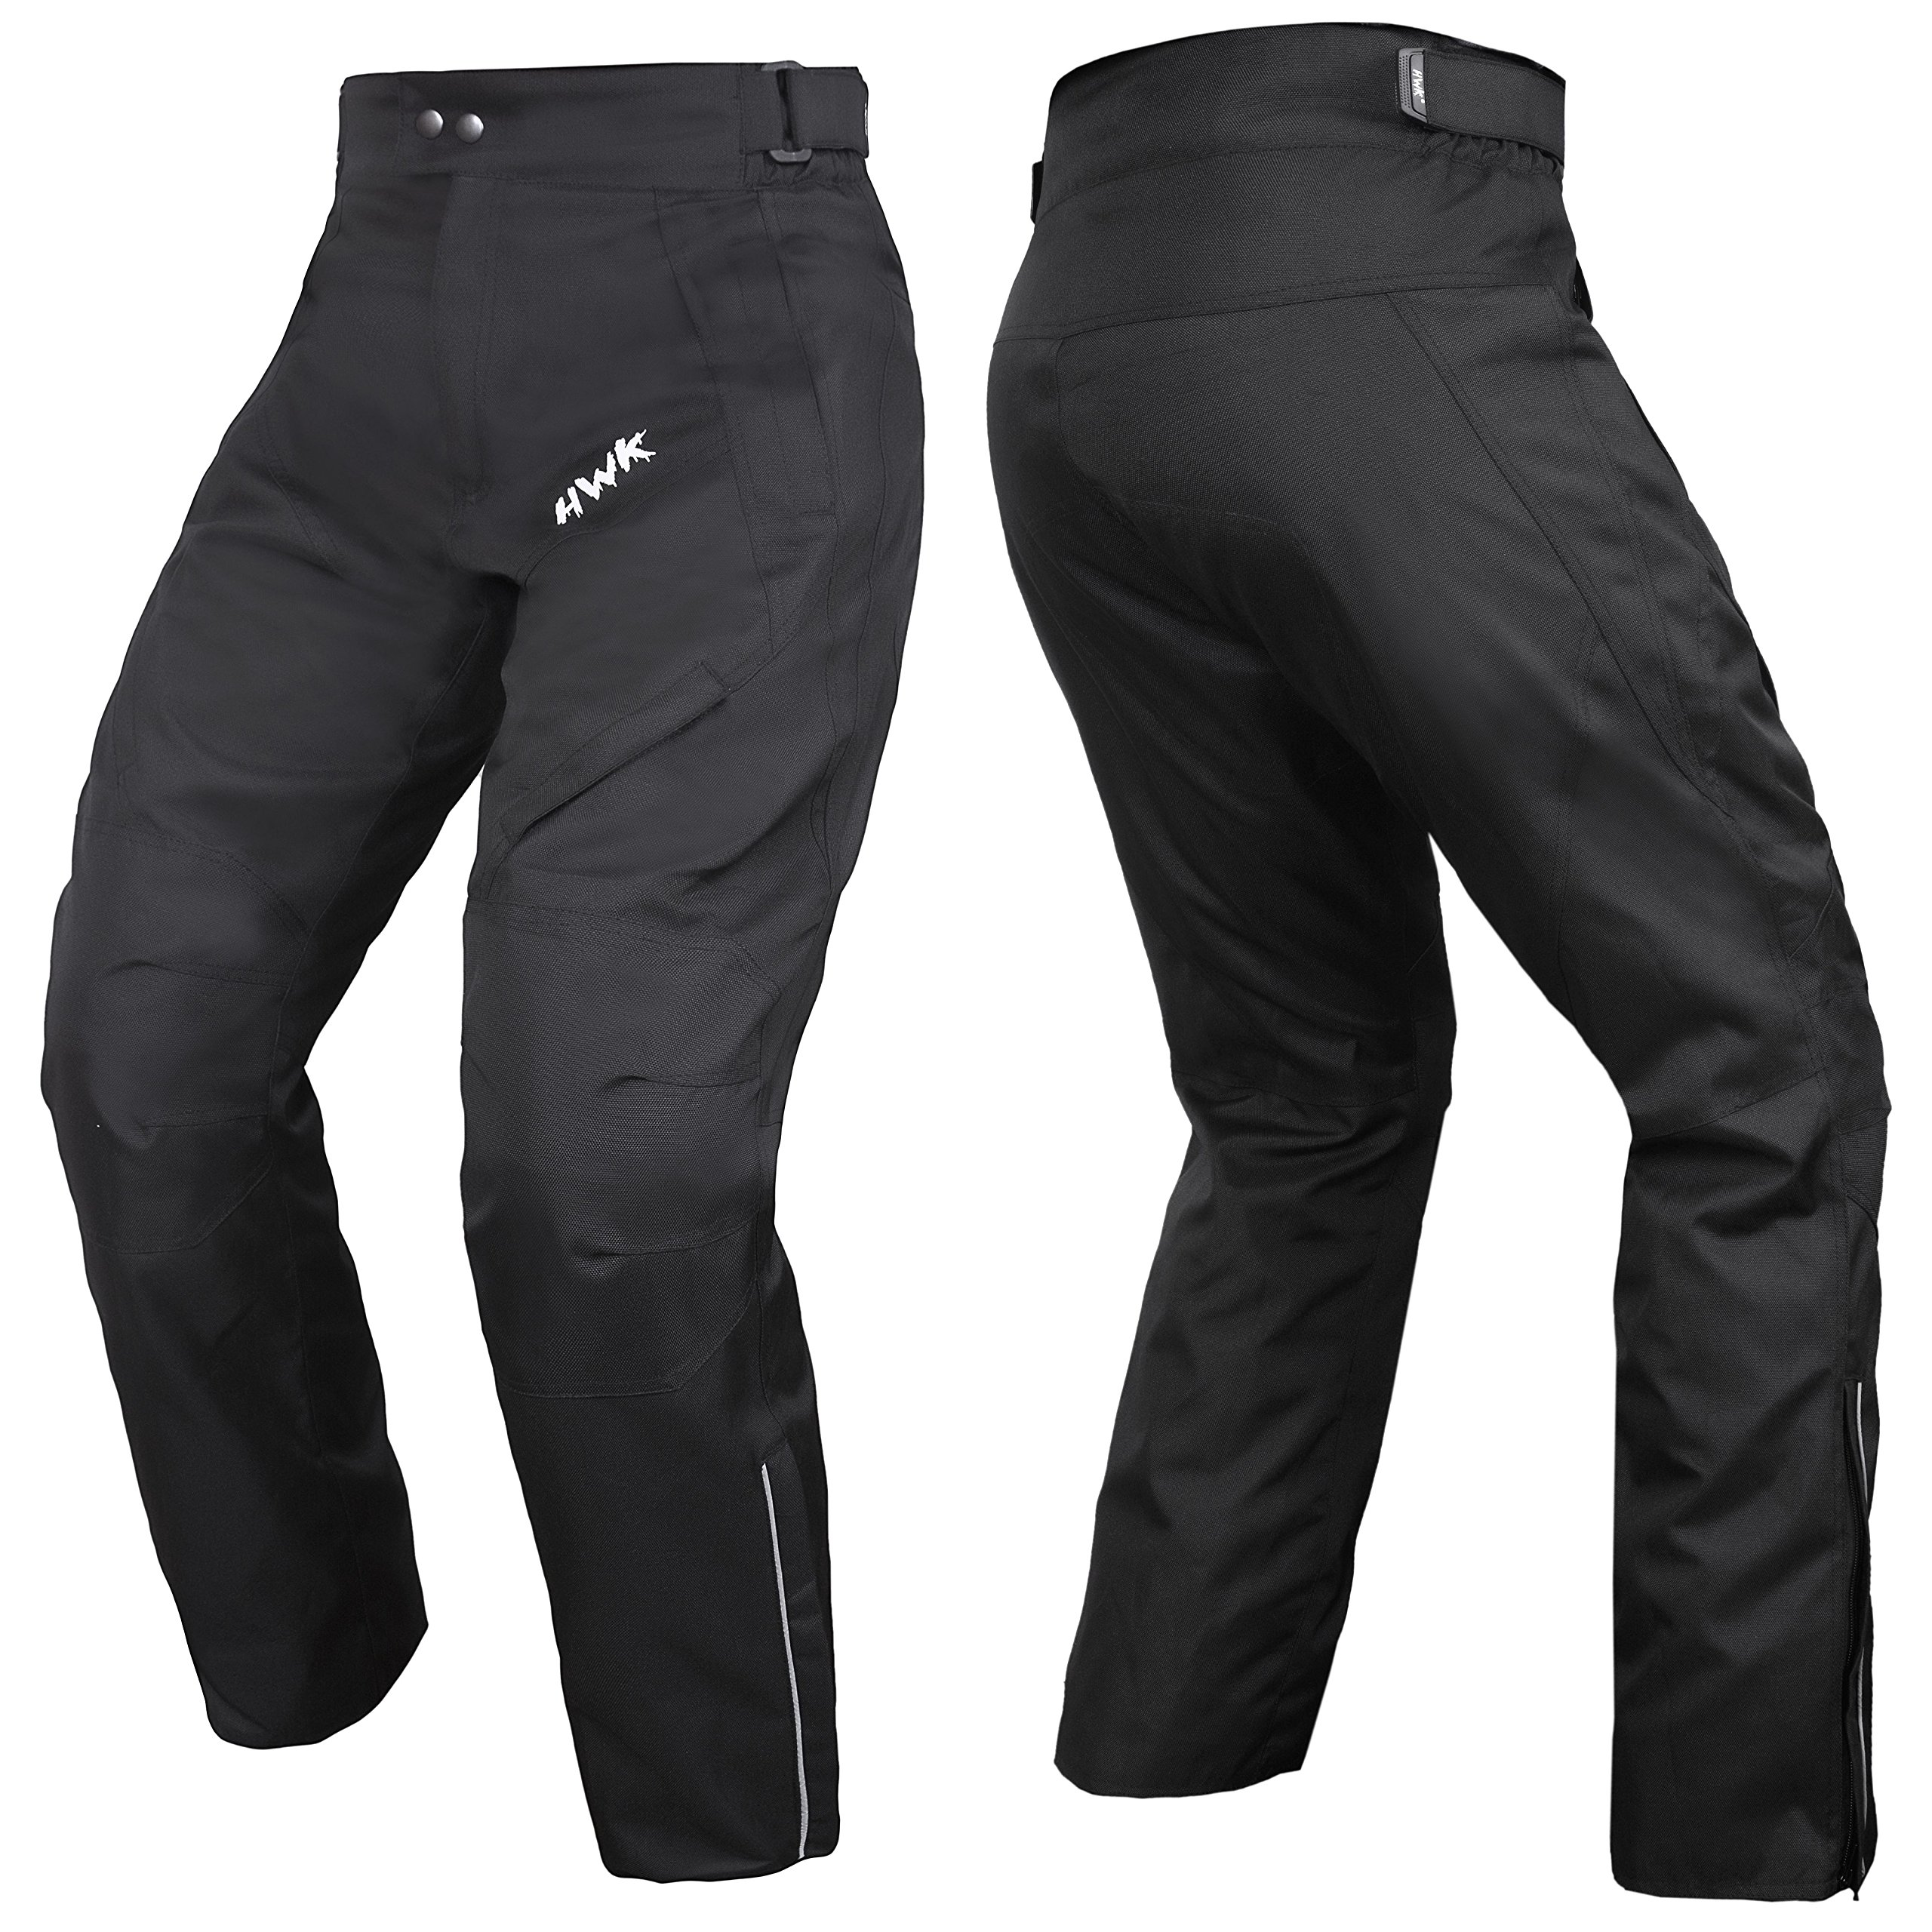 HWK Mens Black Textile Breathable Waterproof CE Armoured Motorbike Overpants Motorcycle Trousers/Pants - 1 year Guarantee Waist32''-34'' Inseam32''